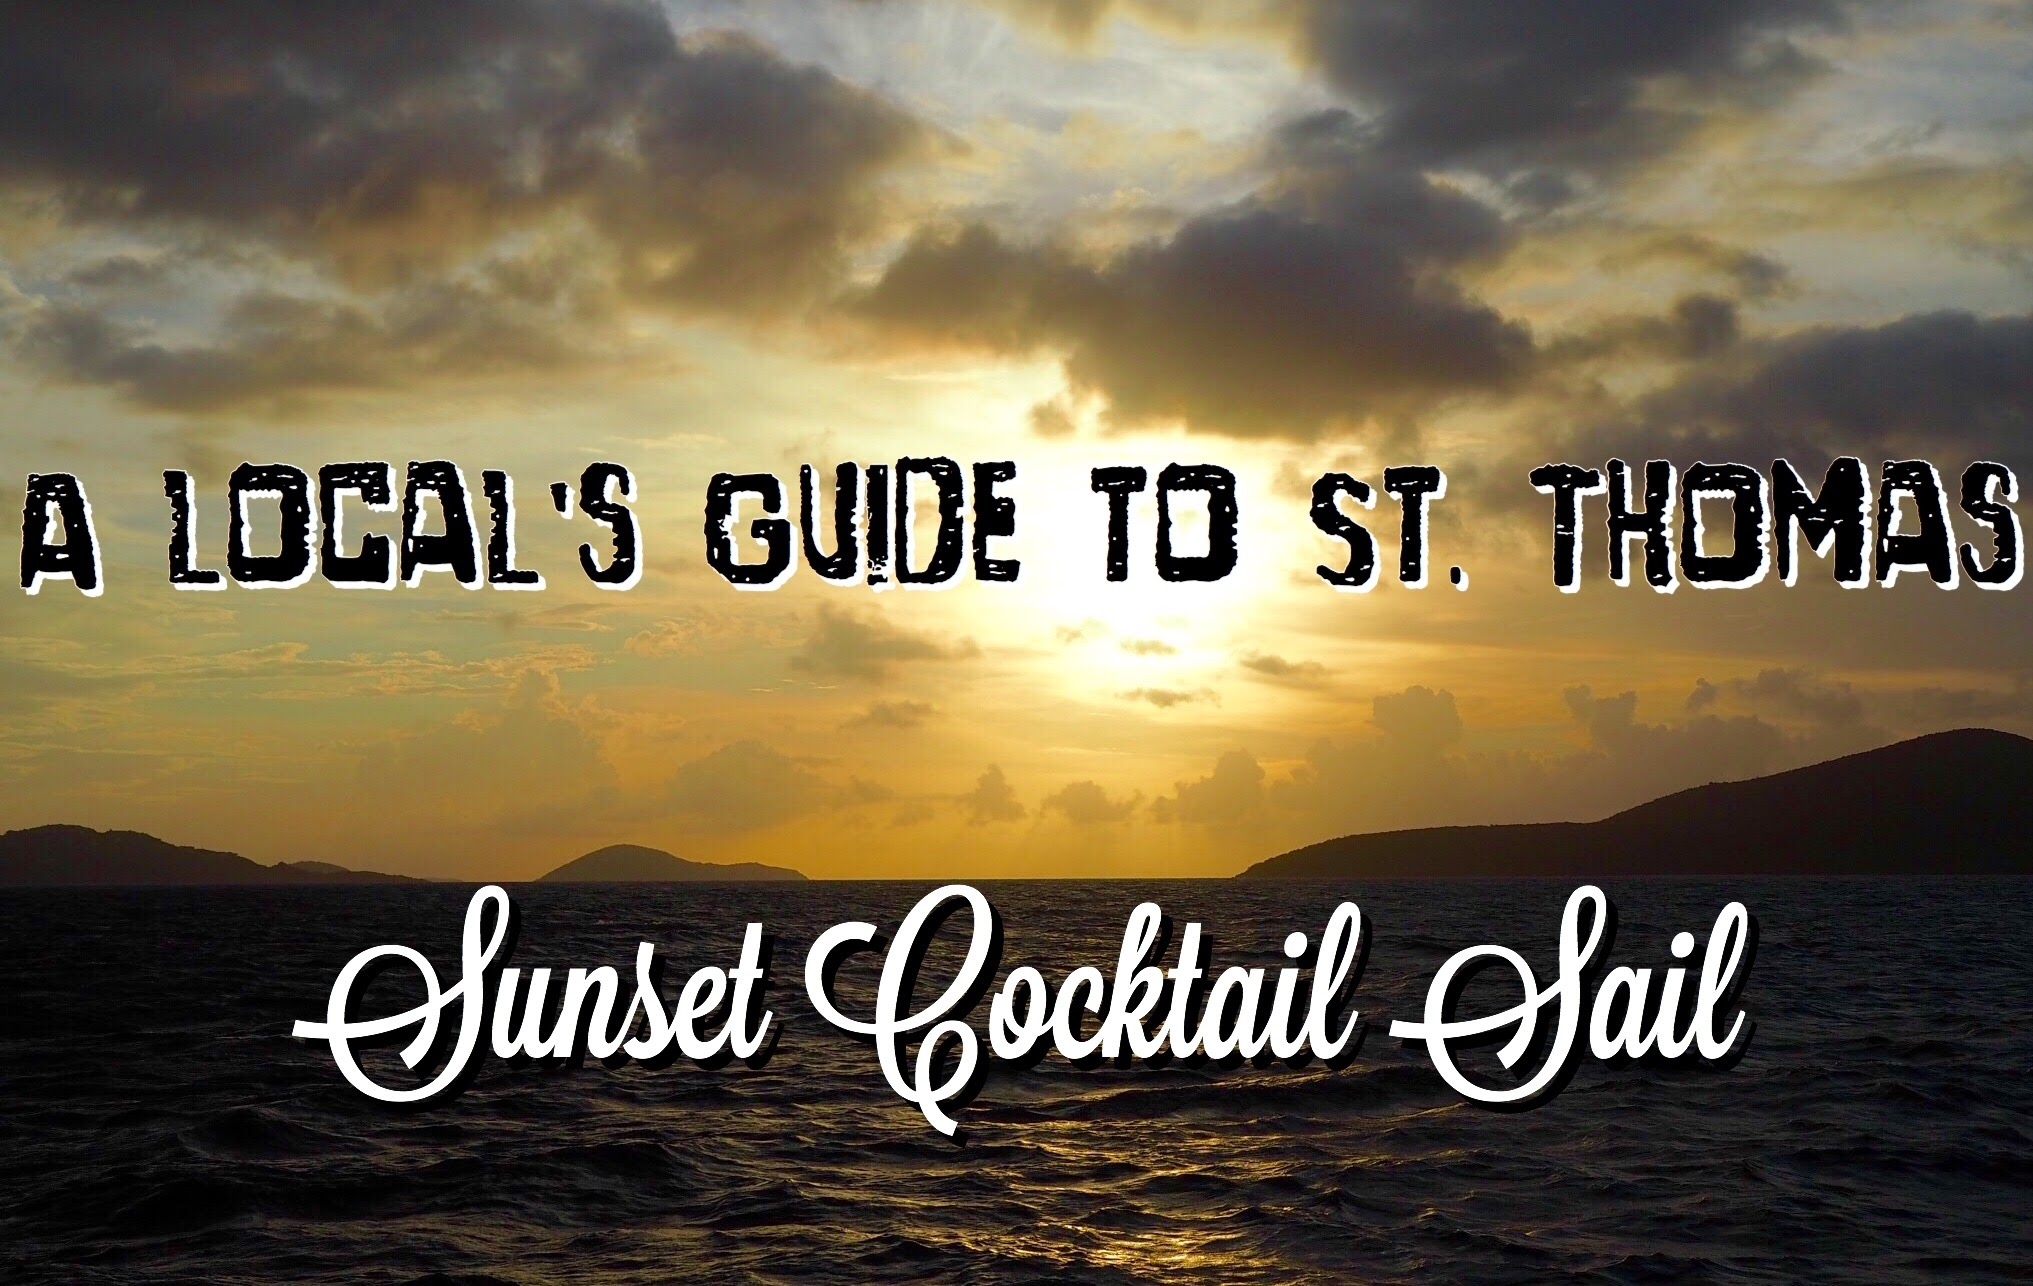 A Local's Guide to St. Thomas: Sunset Cocktail Sail